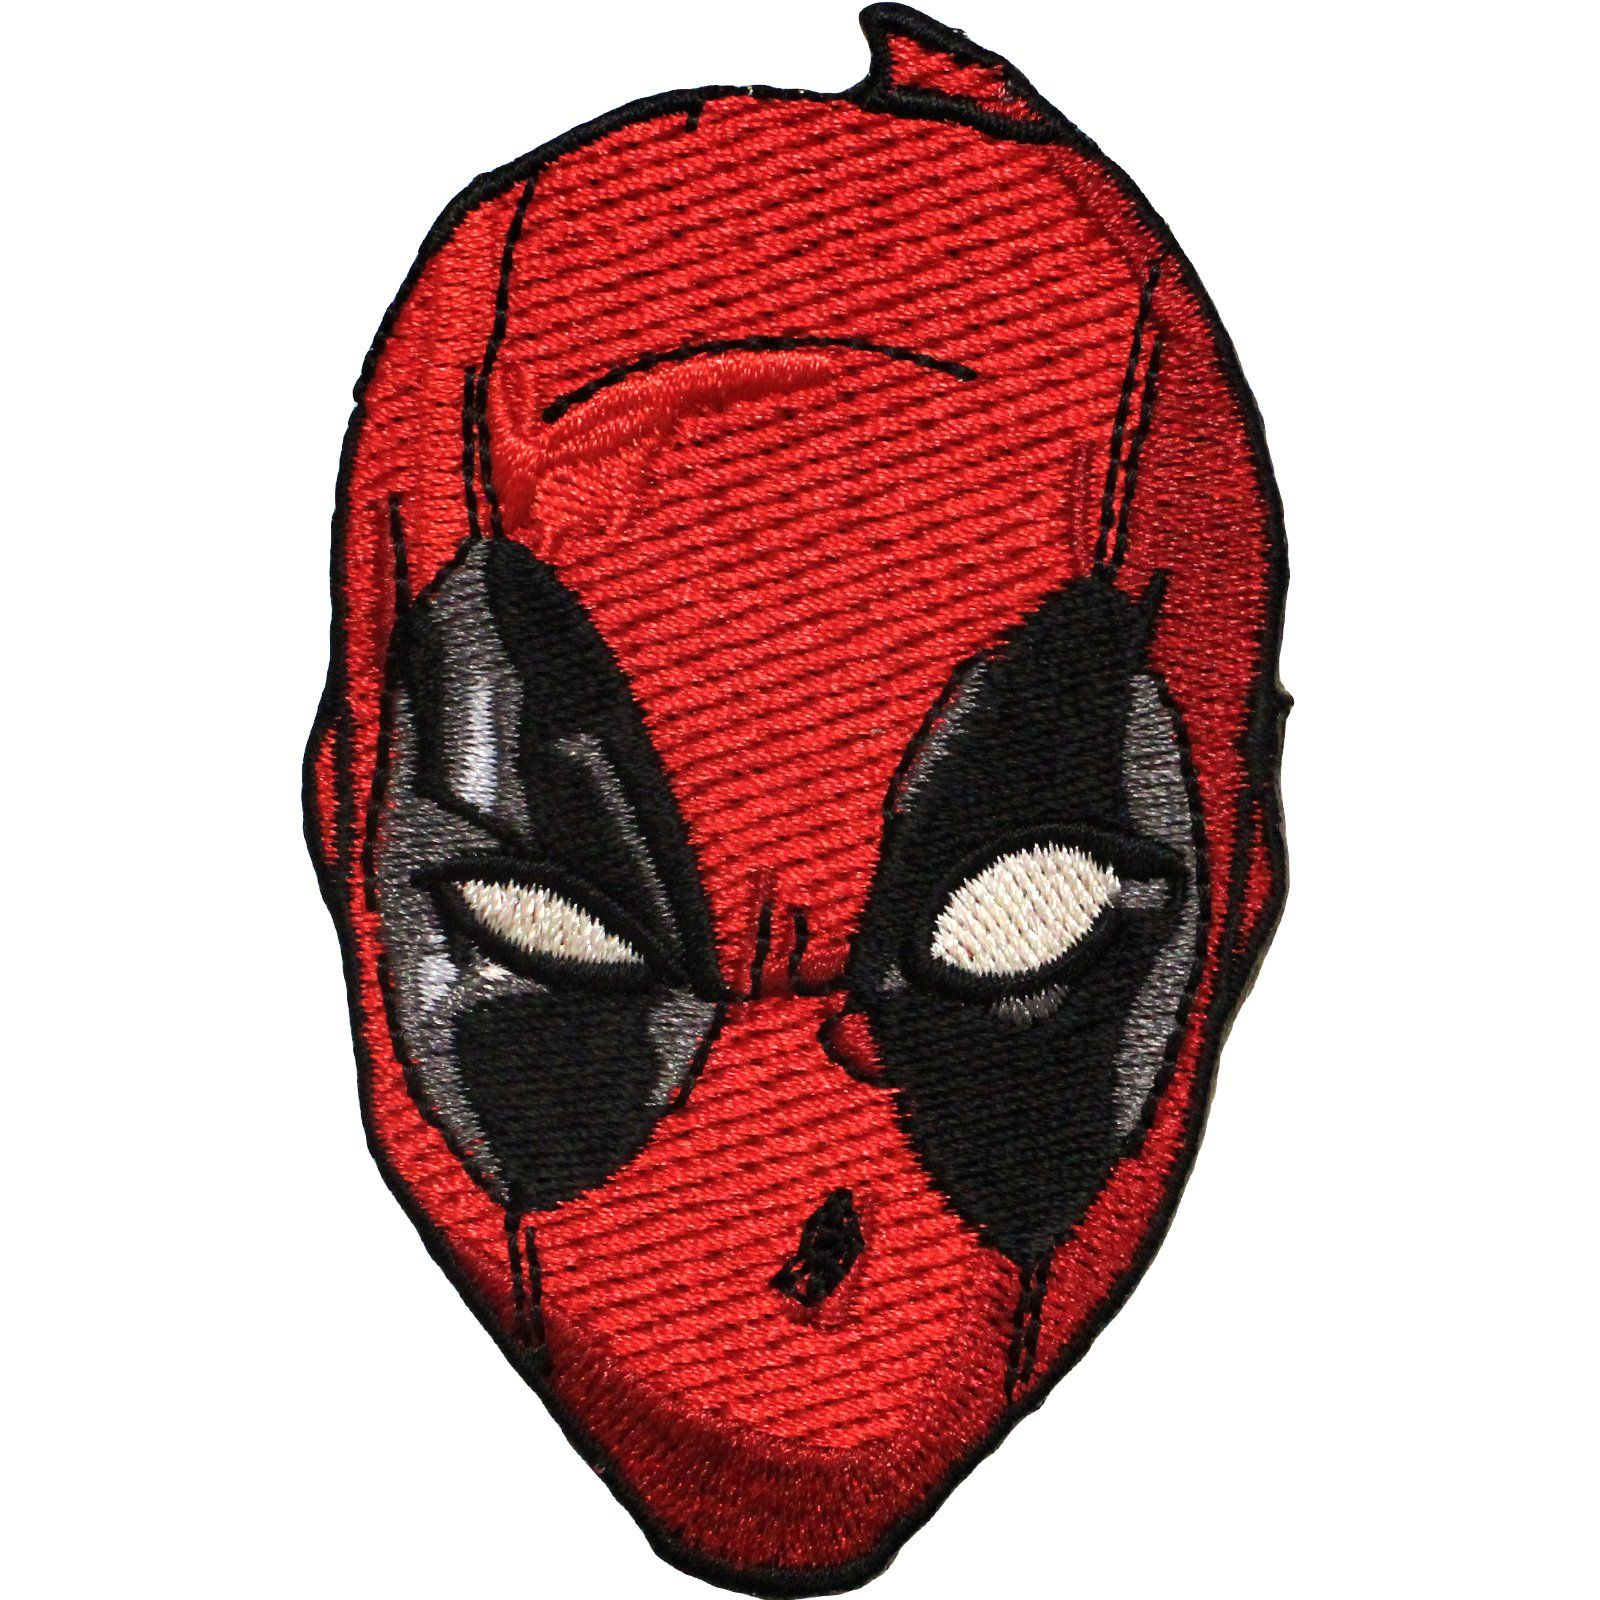 Spoderman Emoji Meme Iron On Embroidered Applique Patch